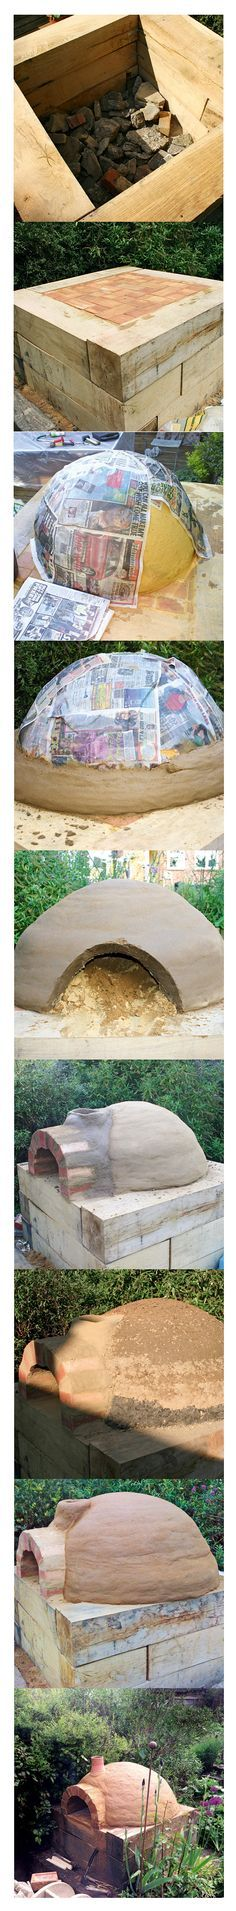 Four à pizza bois : How to build a wood-fired pizza oven Diy Pizza Oven, Pizza Oven Outdoor, Outdoor Cooking, Pizza Ovens, Backyard Projects, Outdoor Projects, Garden Projects, Back Gardens, Outdoor Gardens